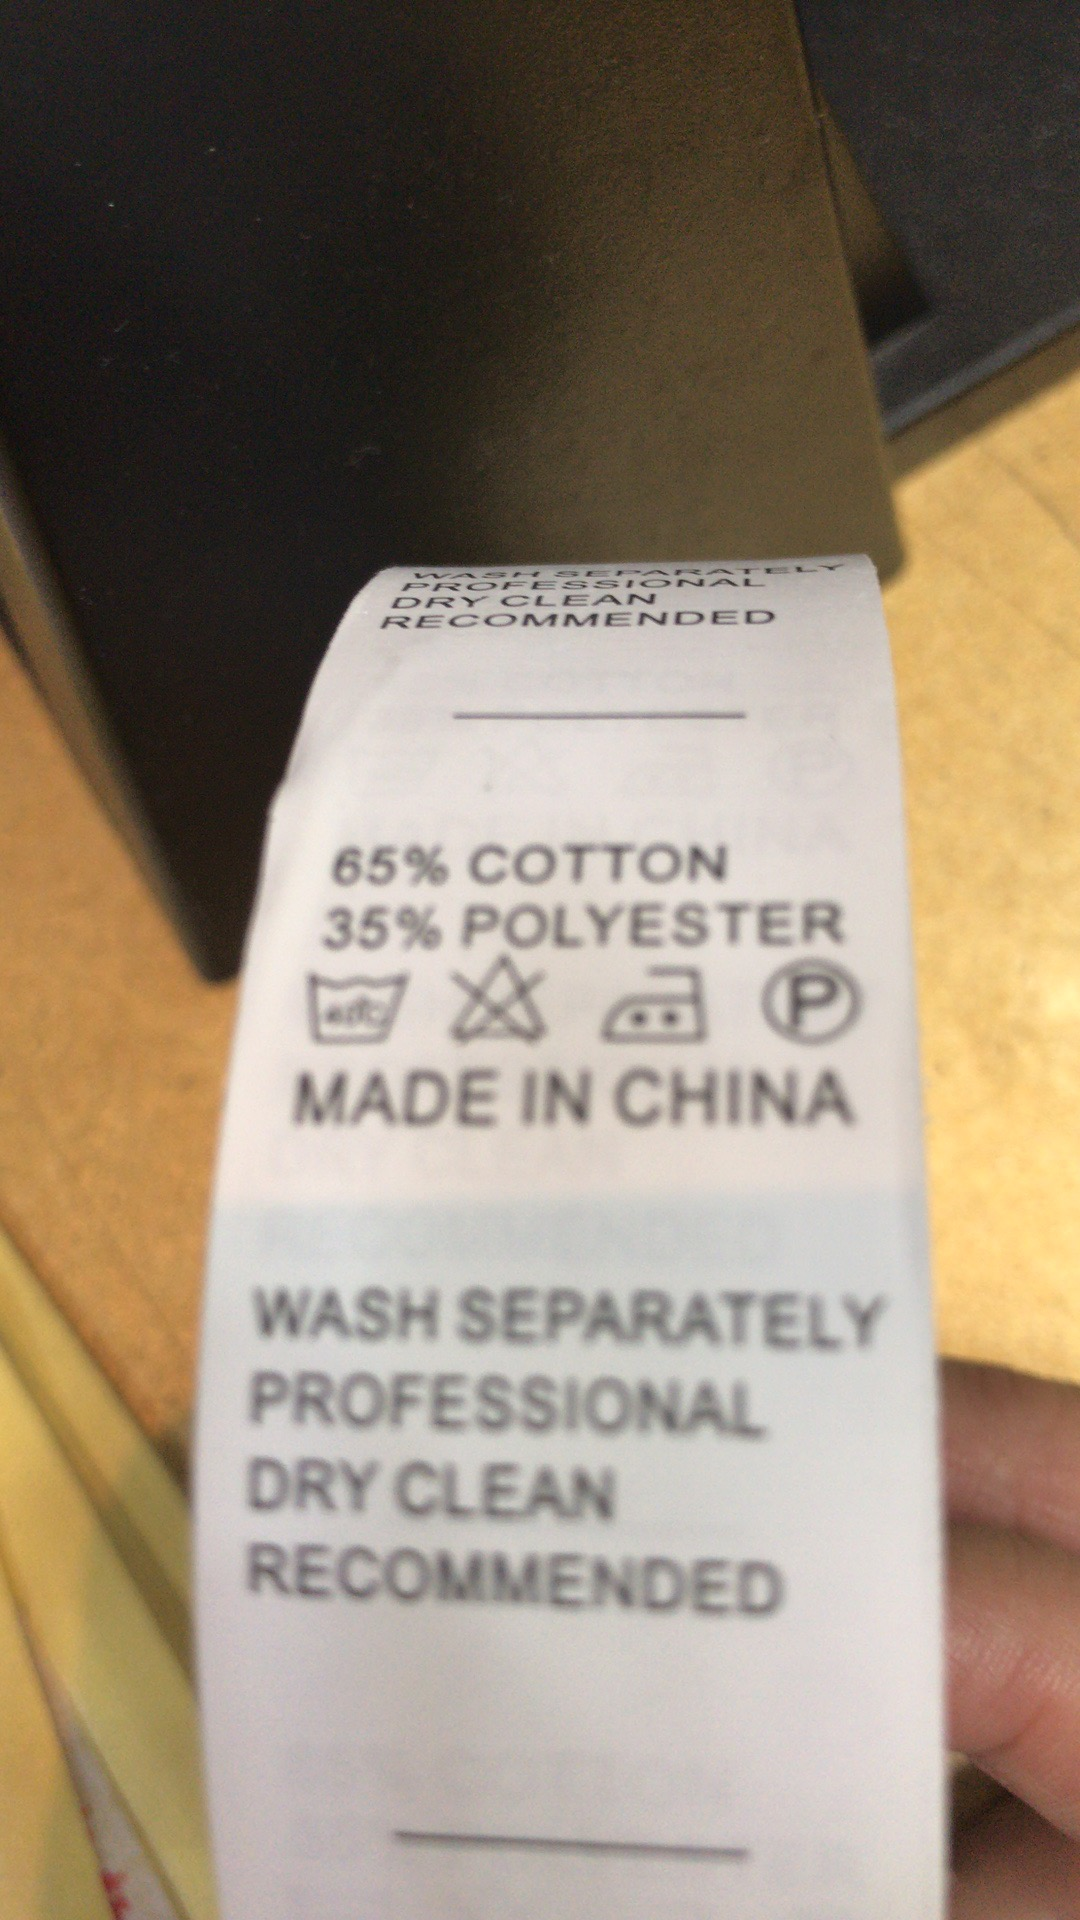 Washing Tags for Private Label Clothes from China